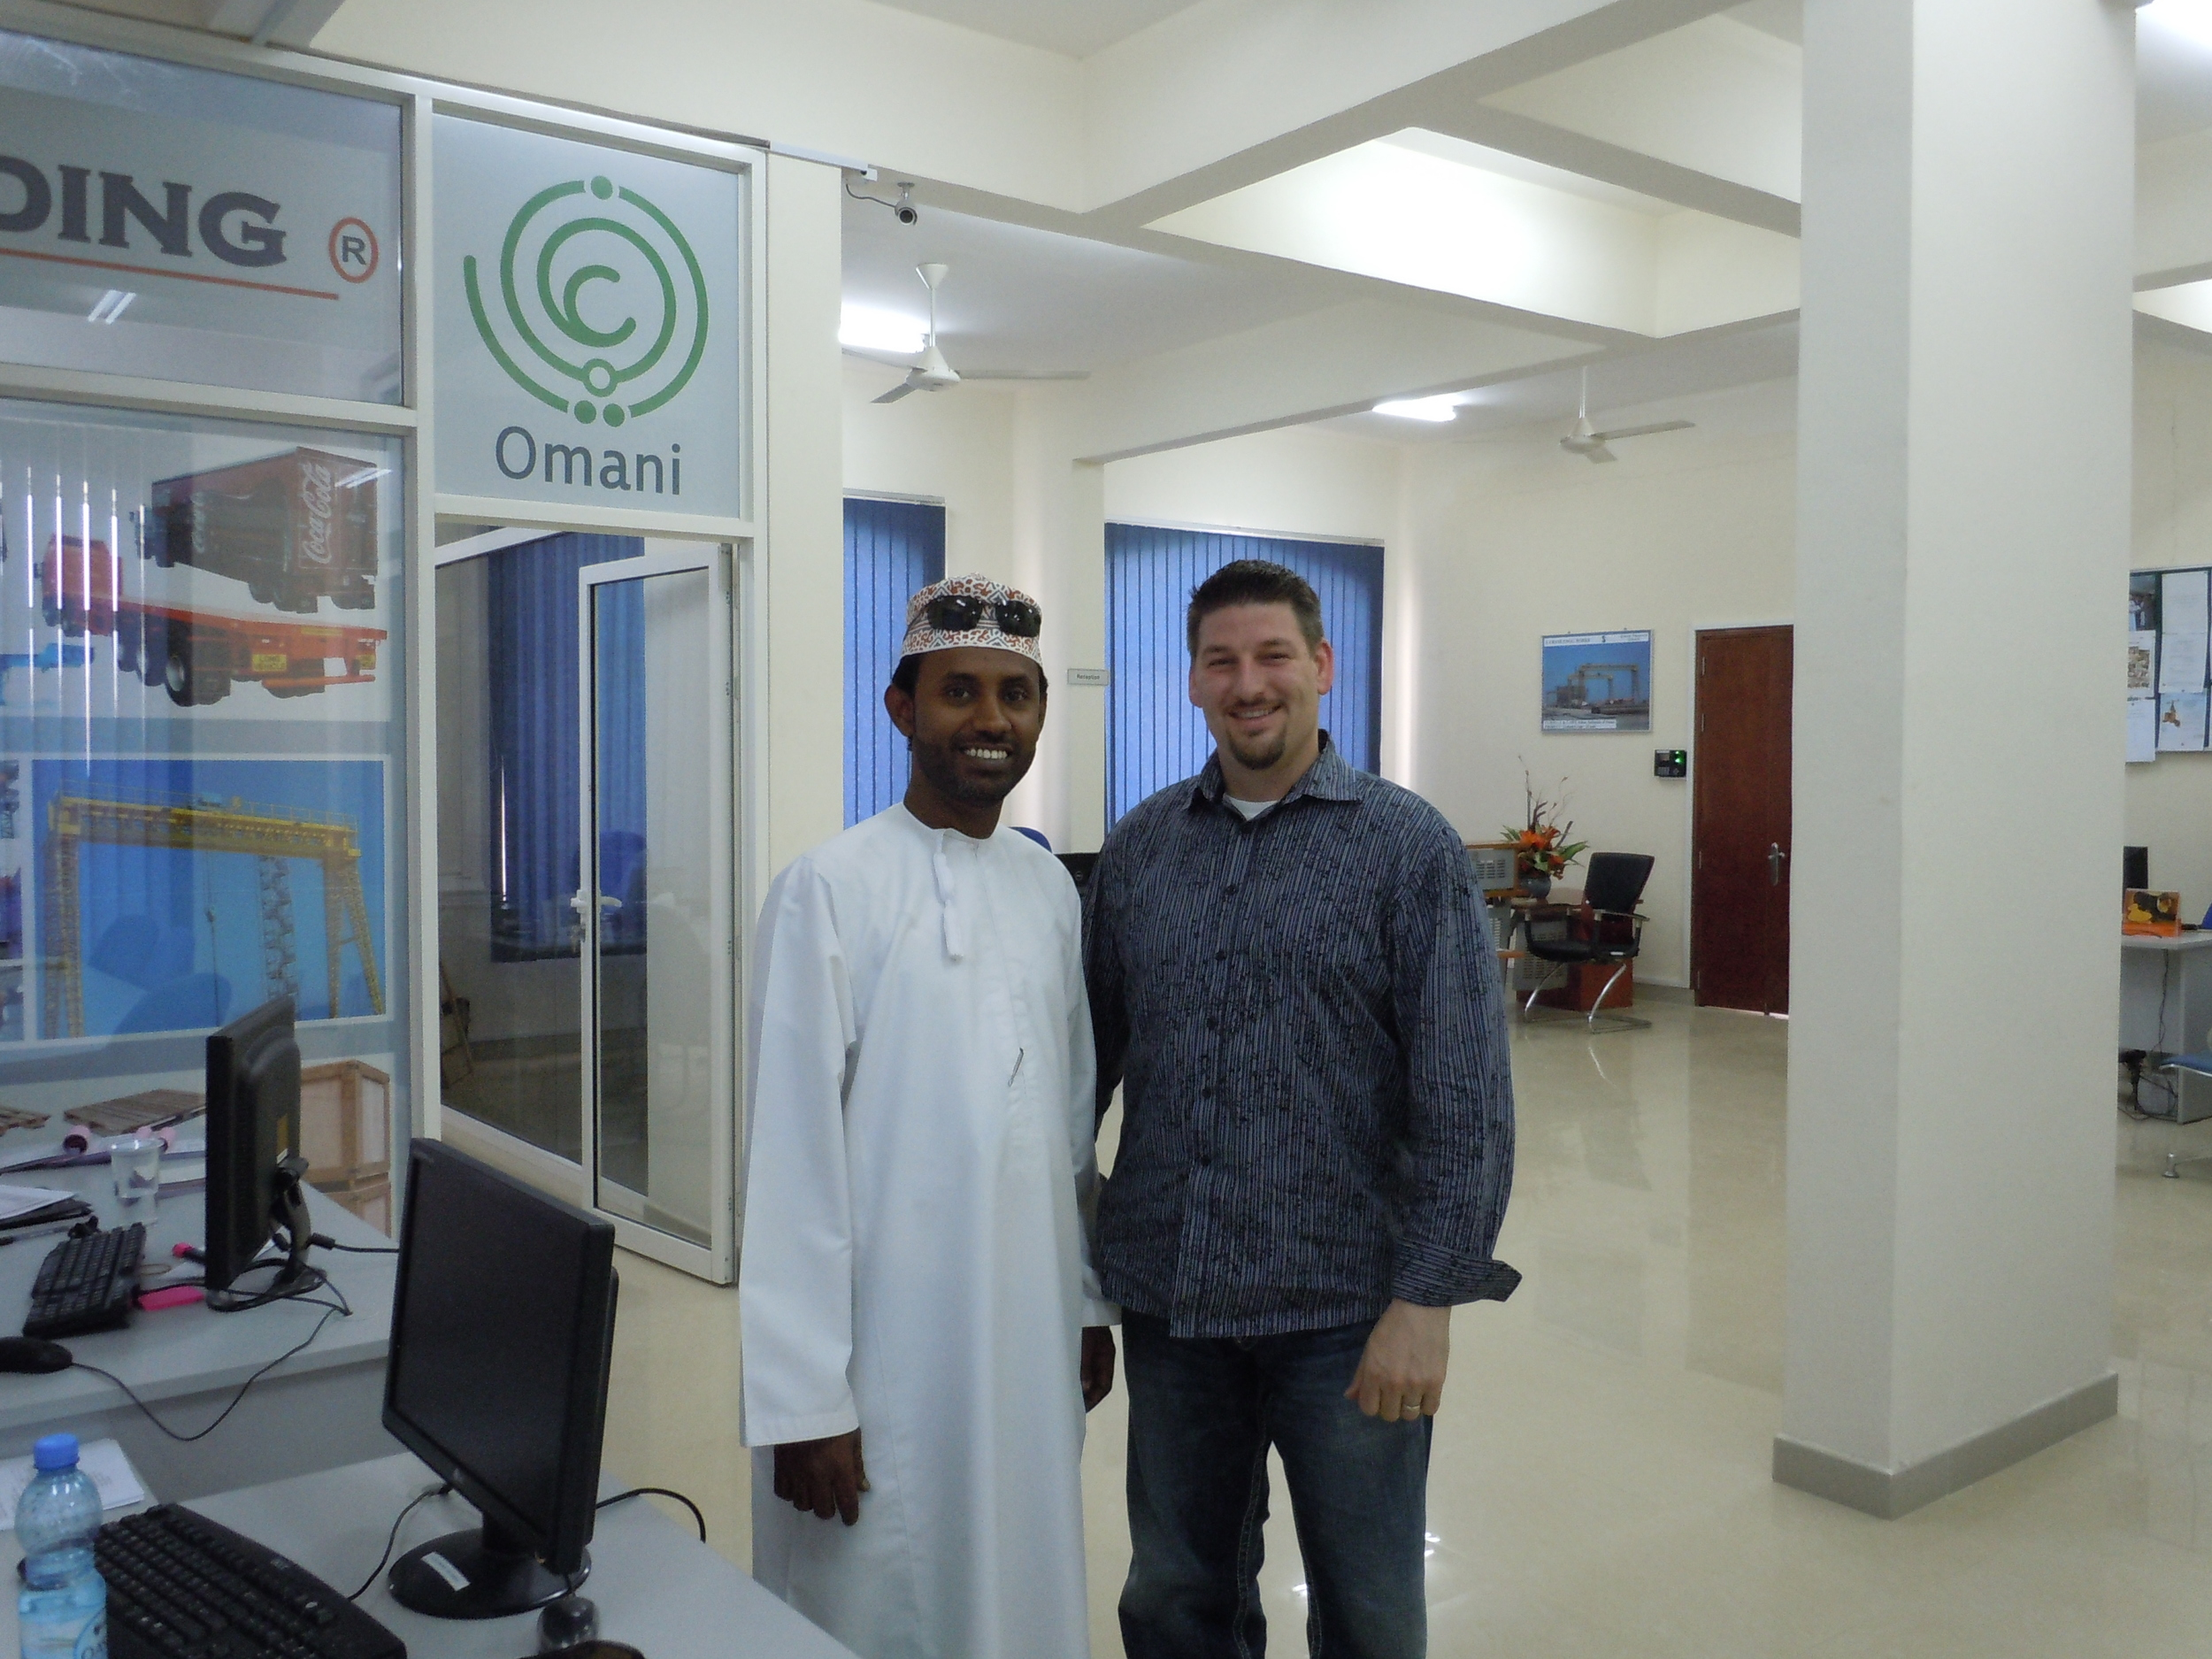 Dr. Brian Williams develops international trade with Omar Bawain from Oman.